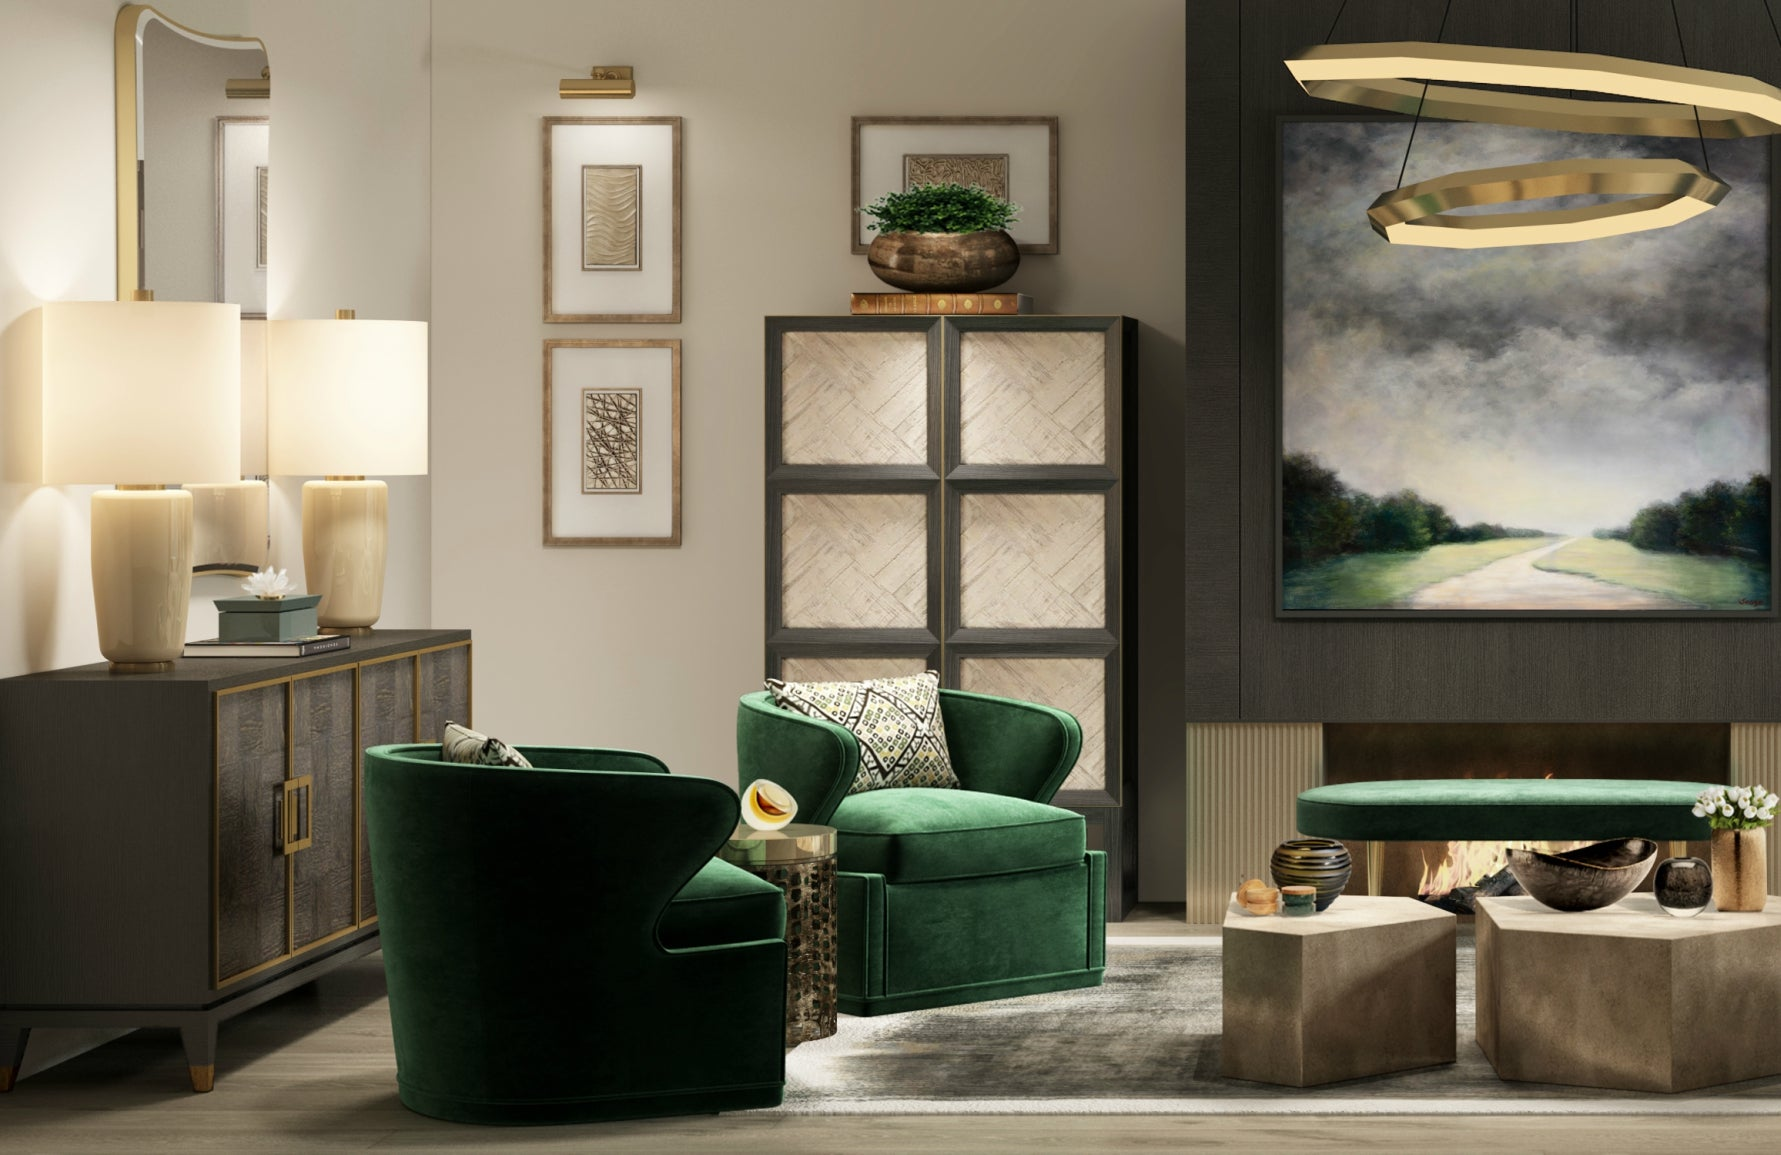 Luxury Green Living Room | Luxury Interior Design | Shop our Wimbledon Collection at LuxDeco.com